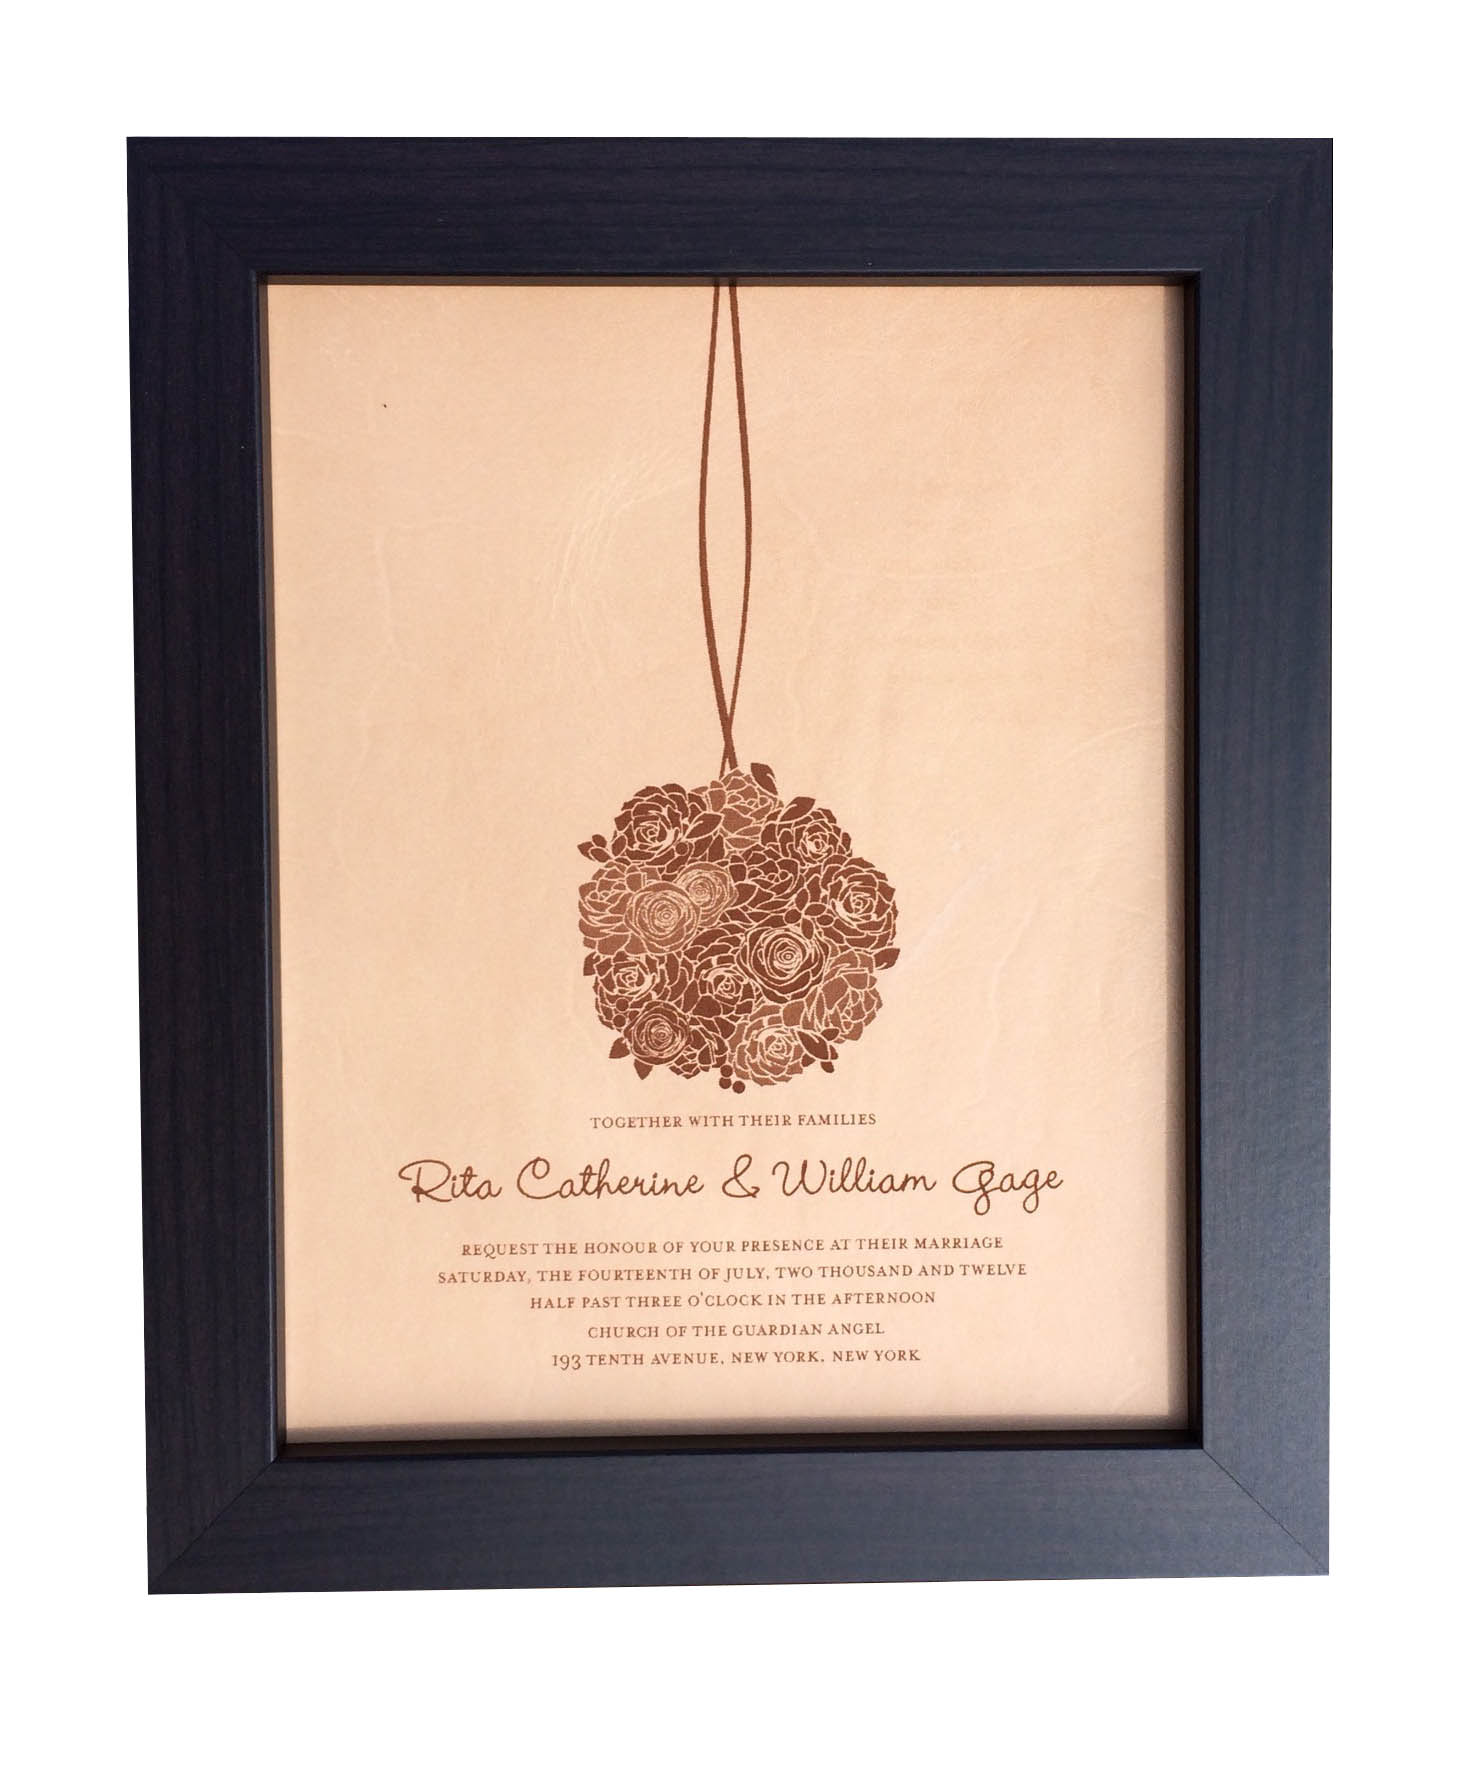 9th Wedding Anniversary Gift Leather: Leather Photo Engraved Wedding Invitation